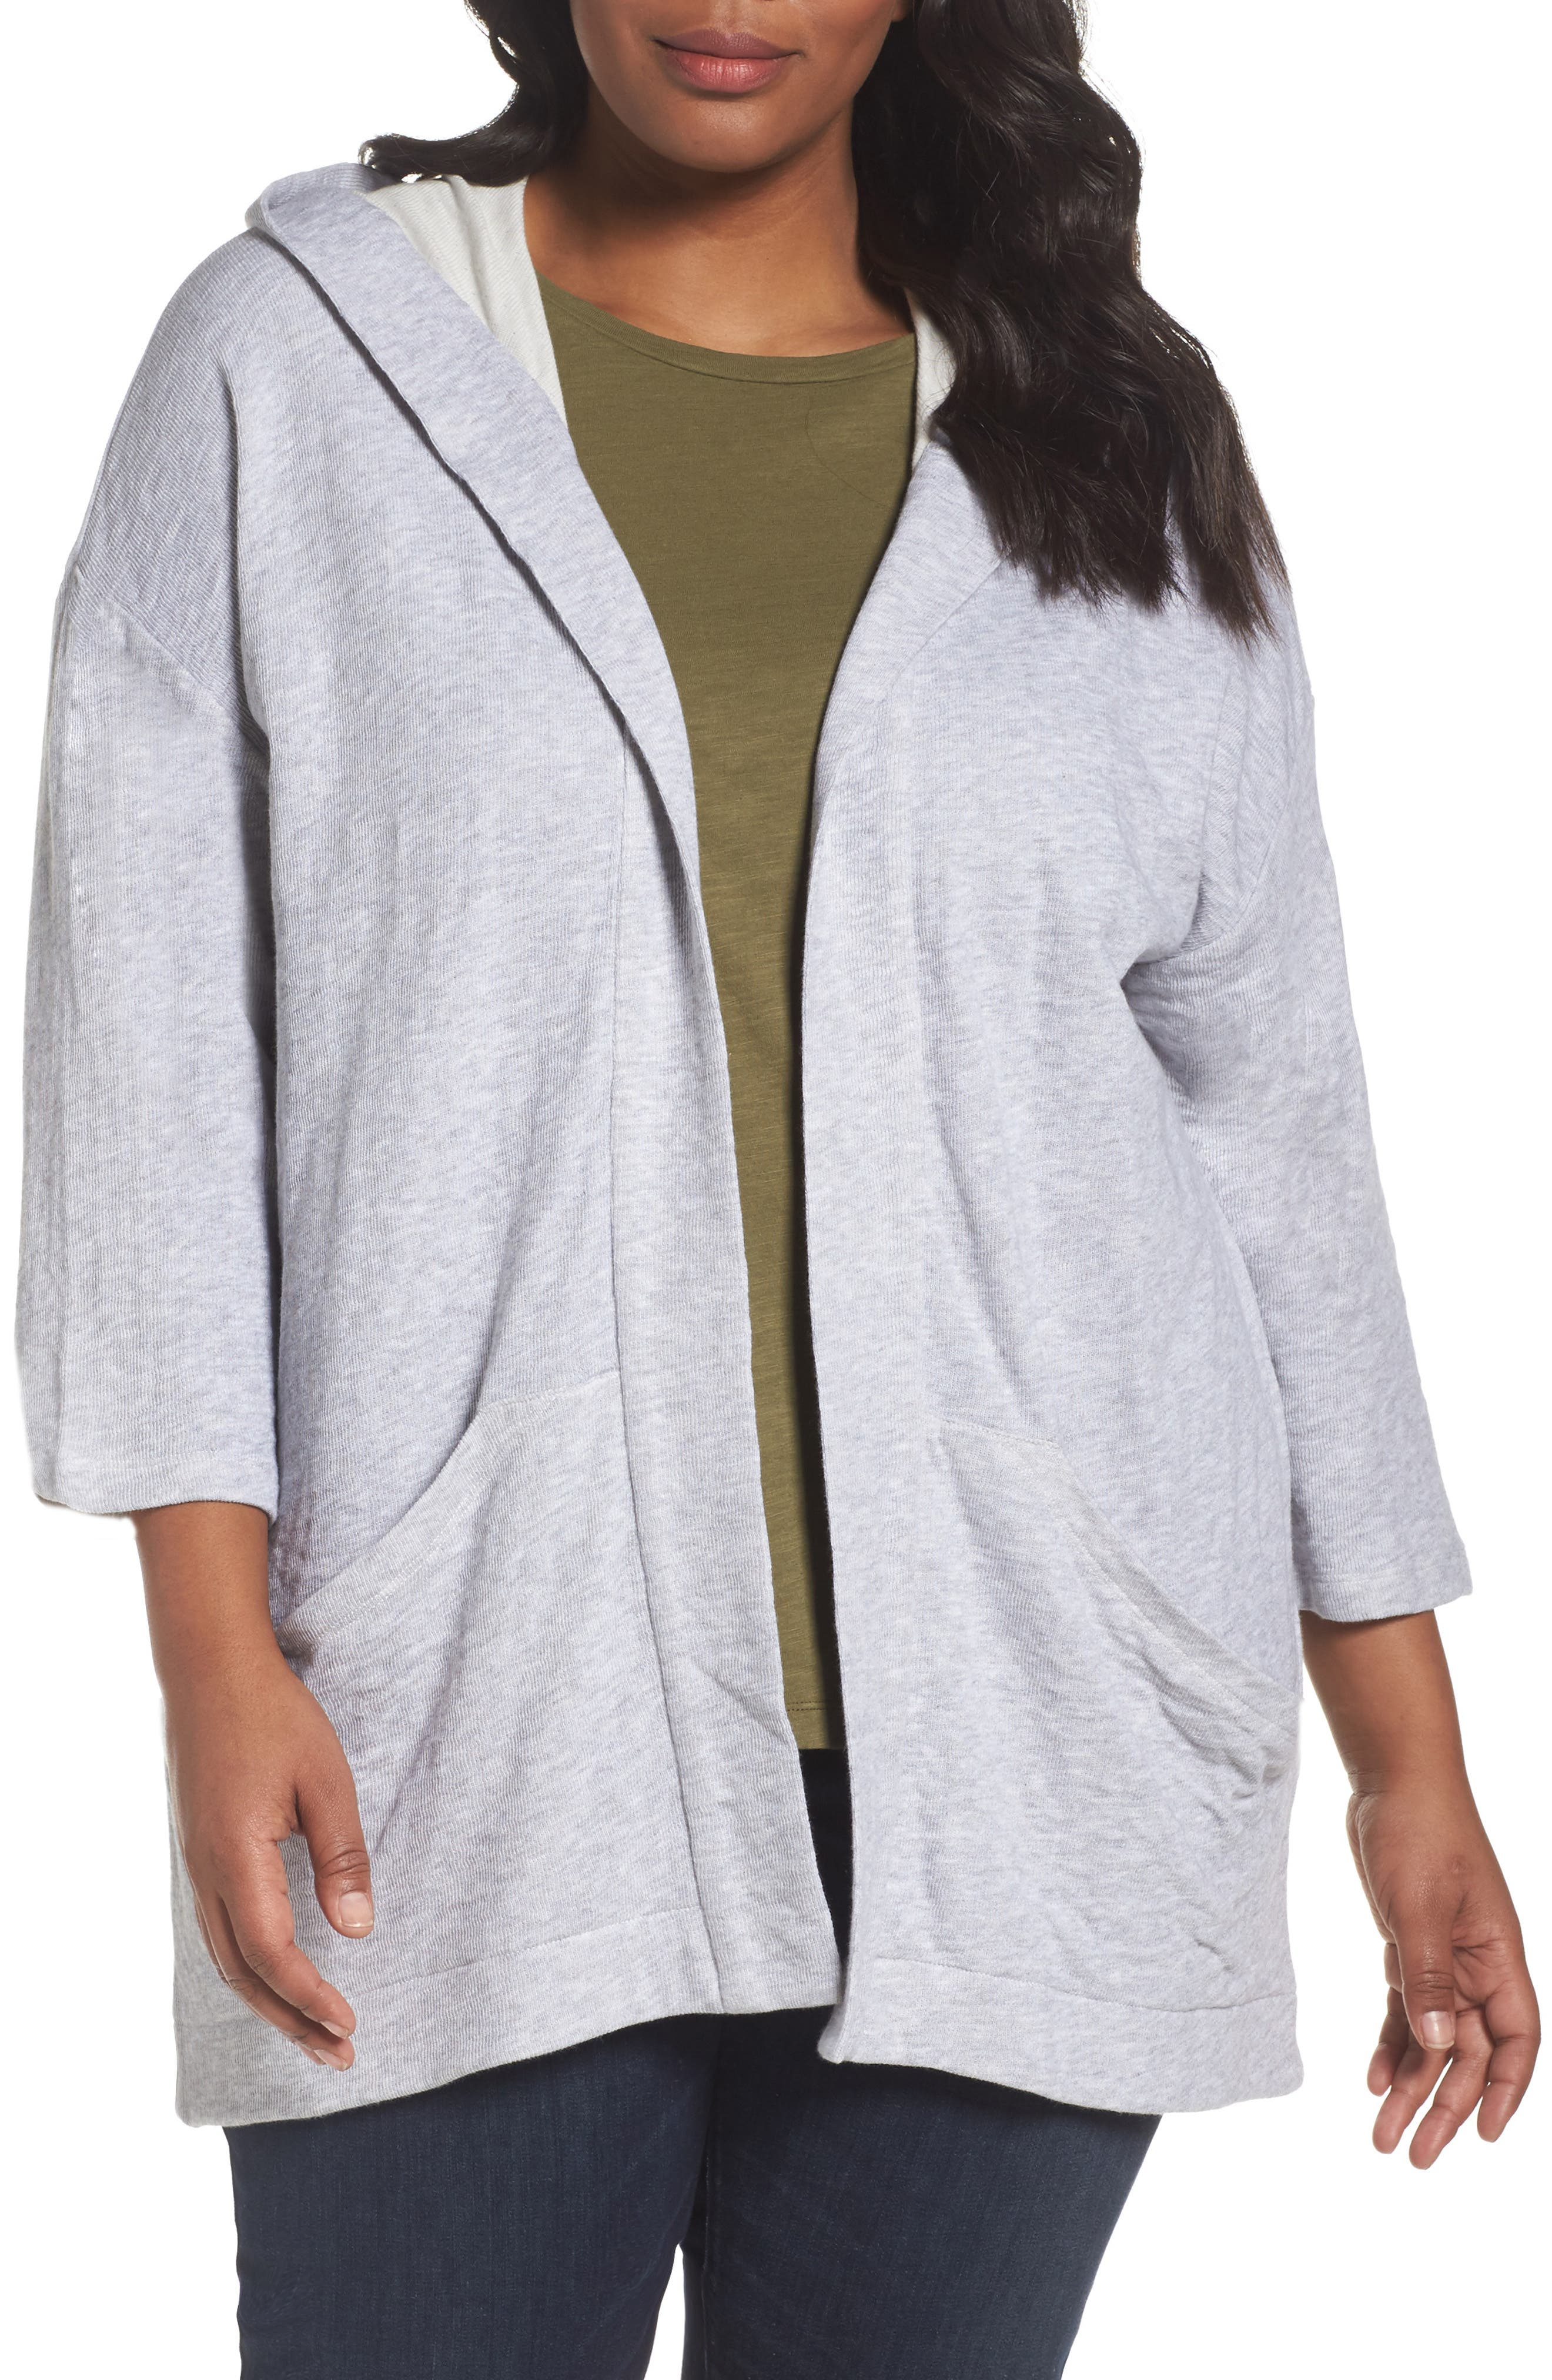 Main Image - Eileen Fisher Organic Cotton Knit Hooded Jacket (Plus Size)